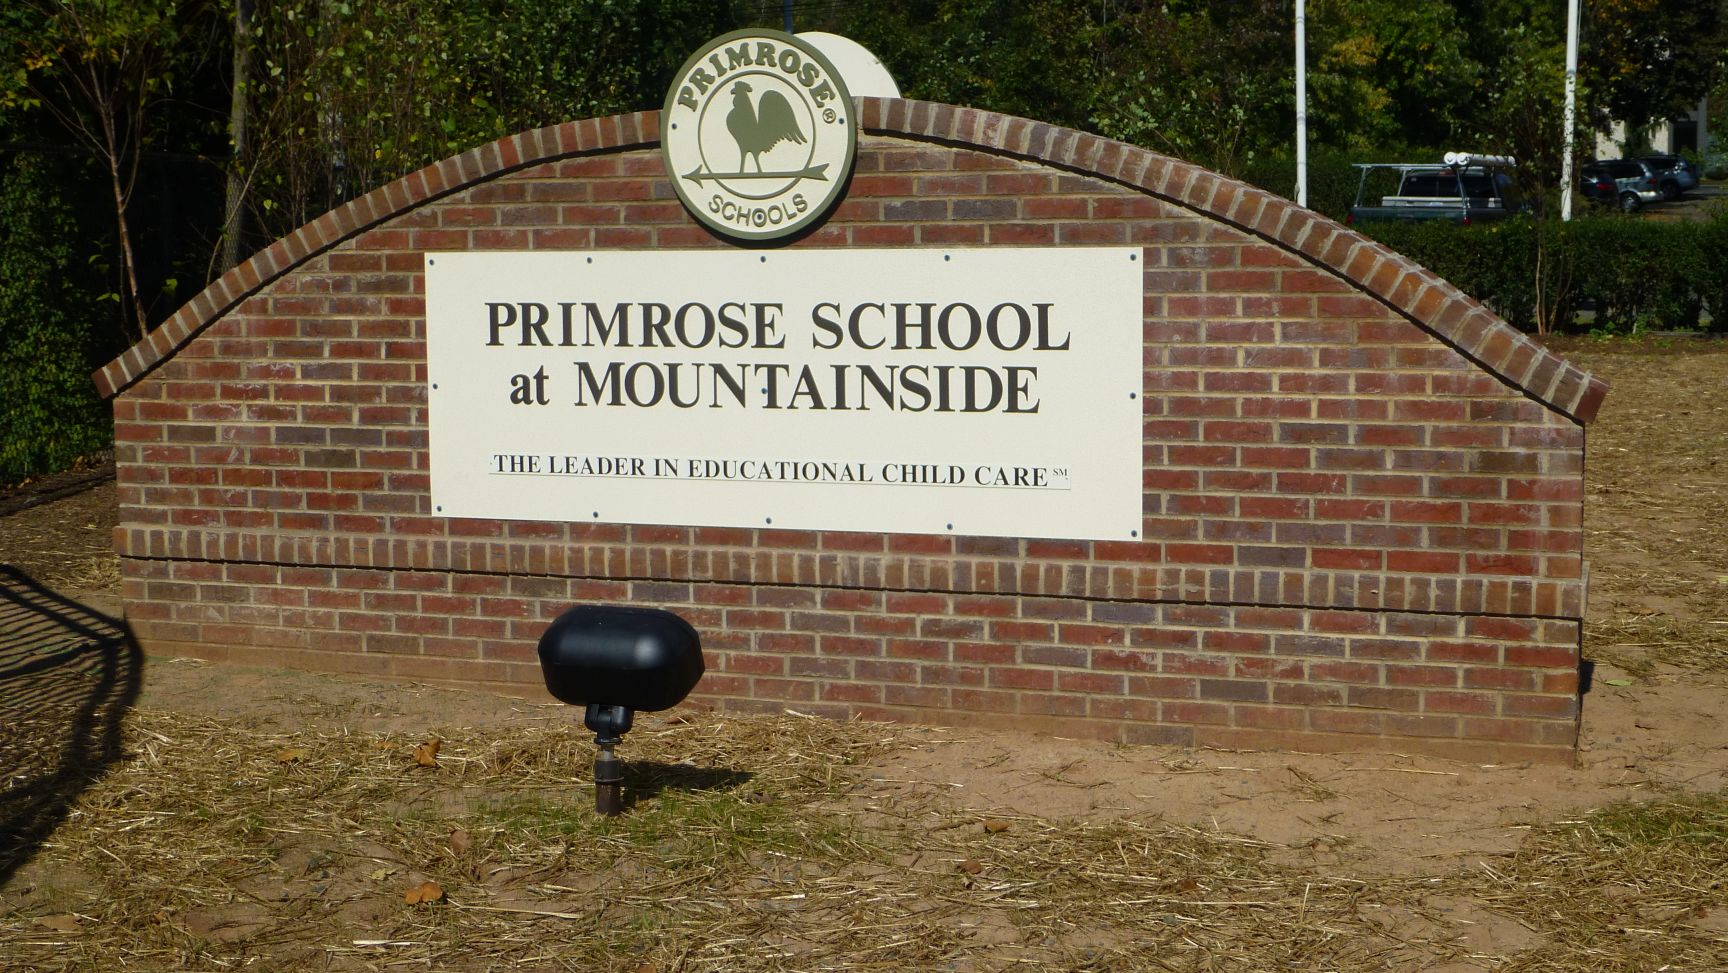 Primrose School at Mountainside image 3